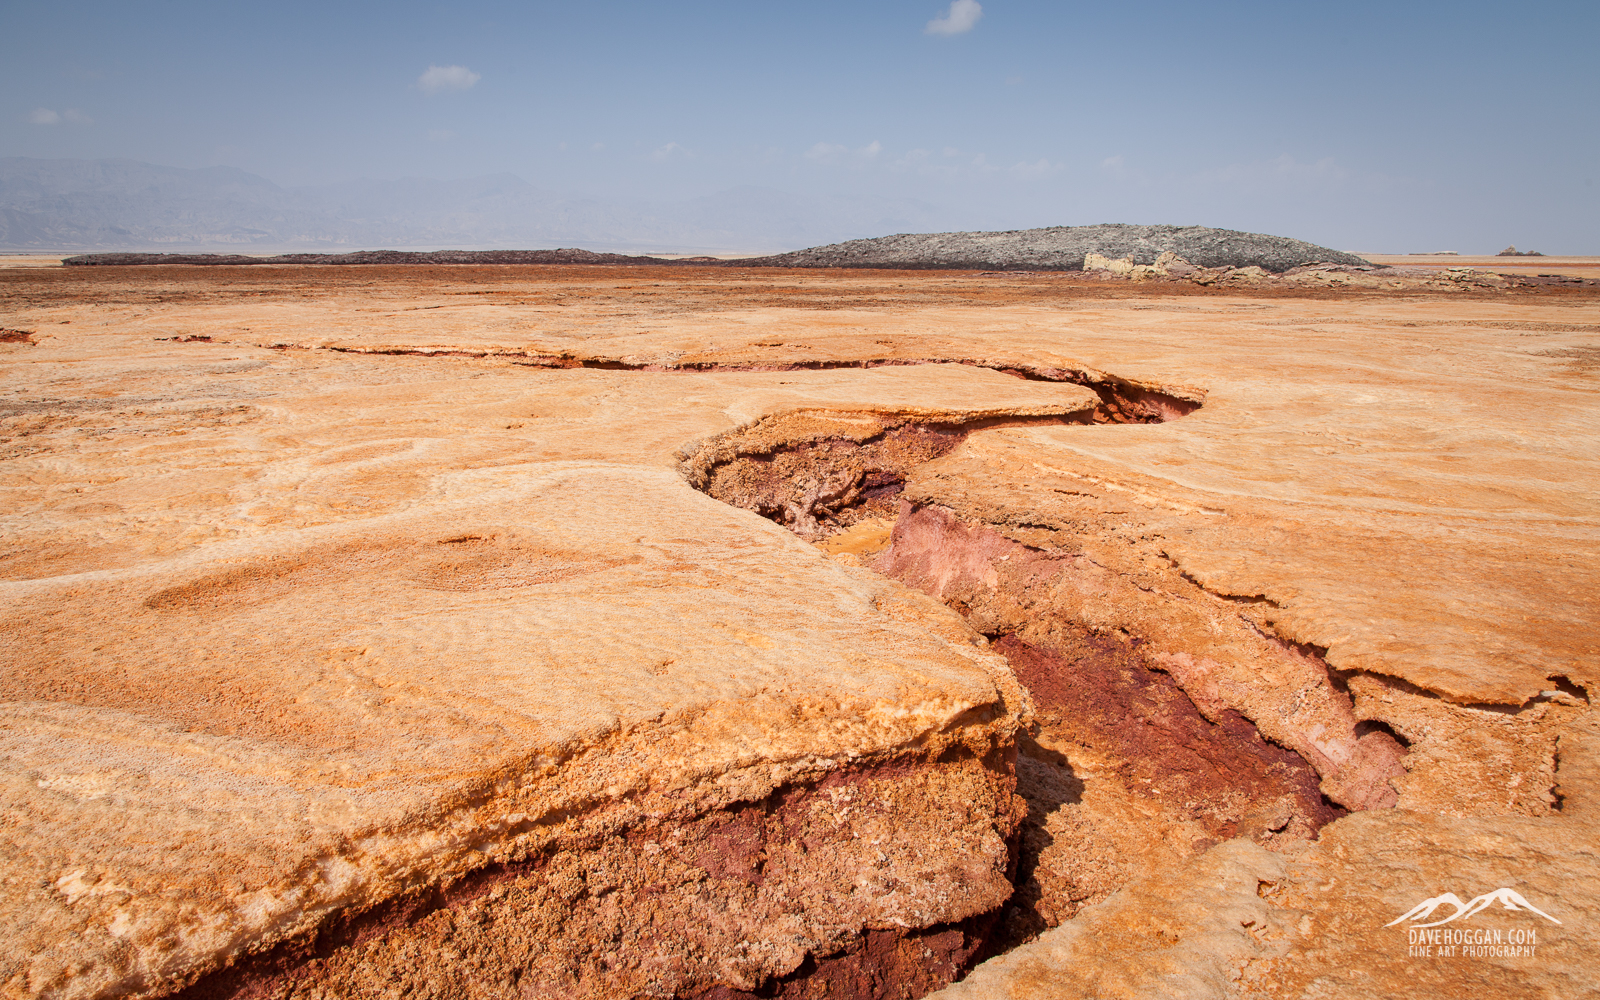 It may be approximately 100 million years until the horn of Africa becomes its own continent, but signs of movement are visible in this highly geologically active area.